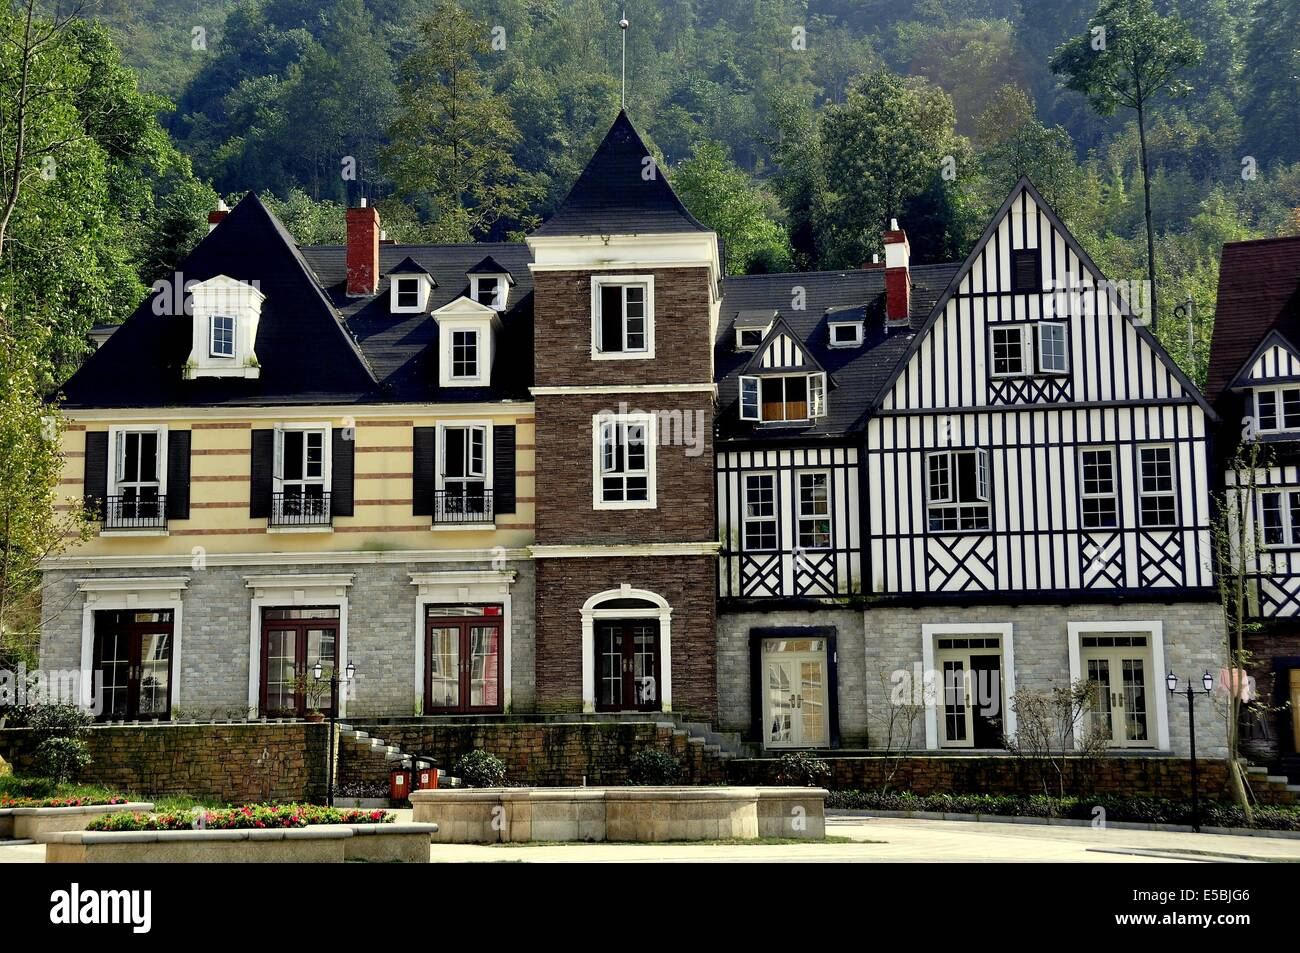 BAI LU TOWN, CHINA: Handsome French-inspired half-timbered and stucco houses line a village square  * Stock Photo